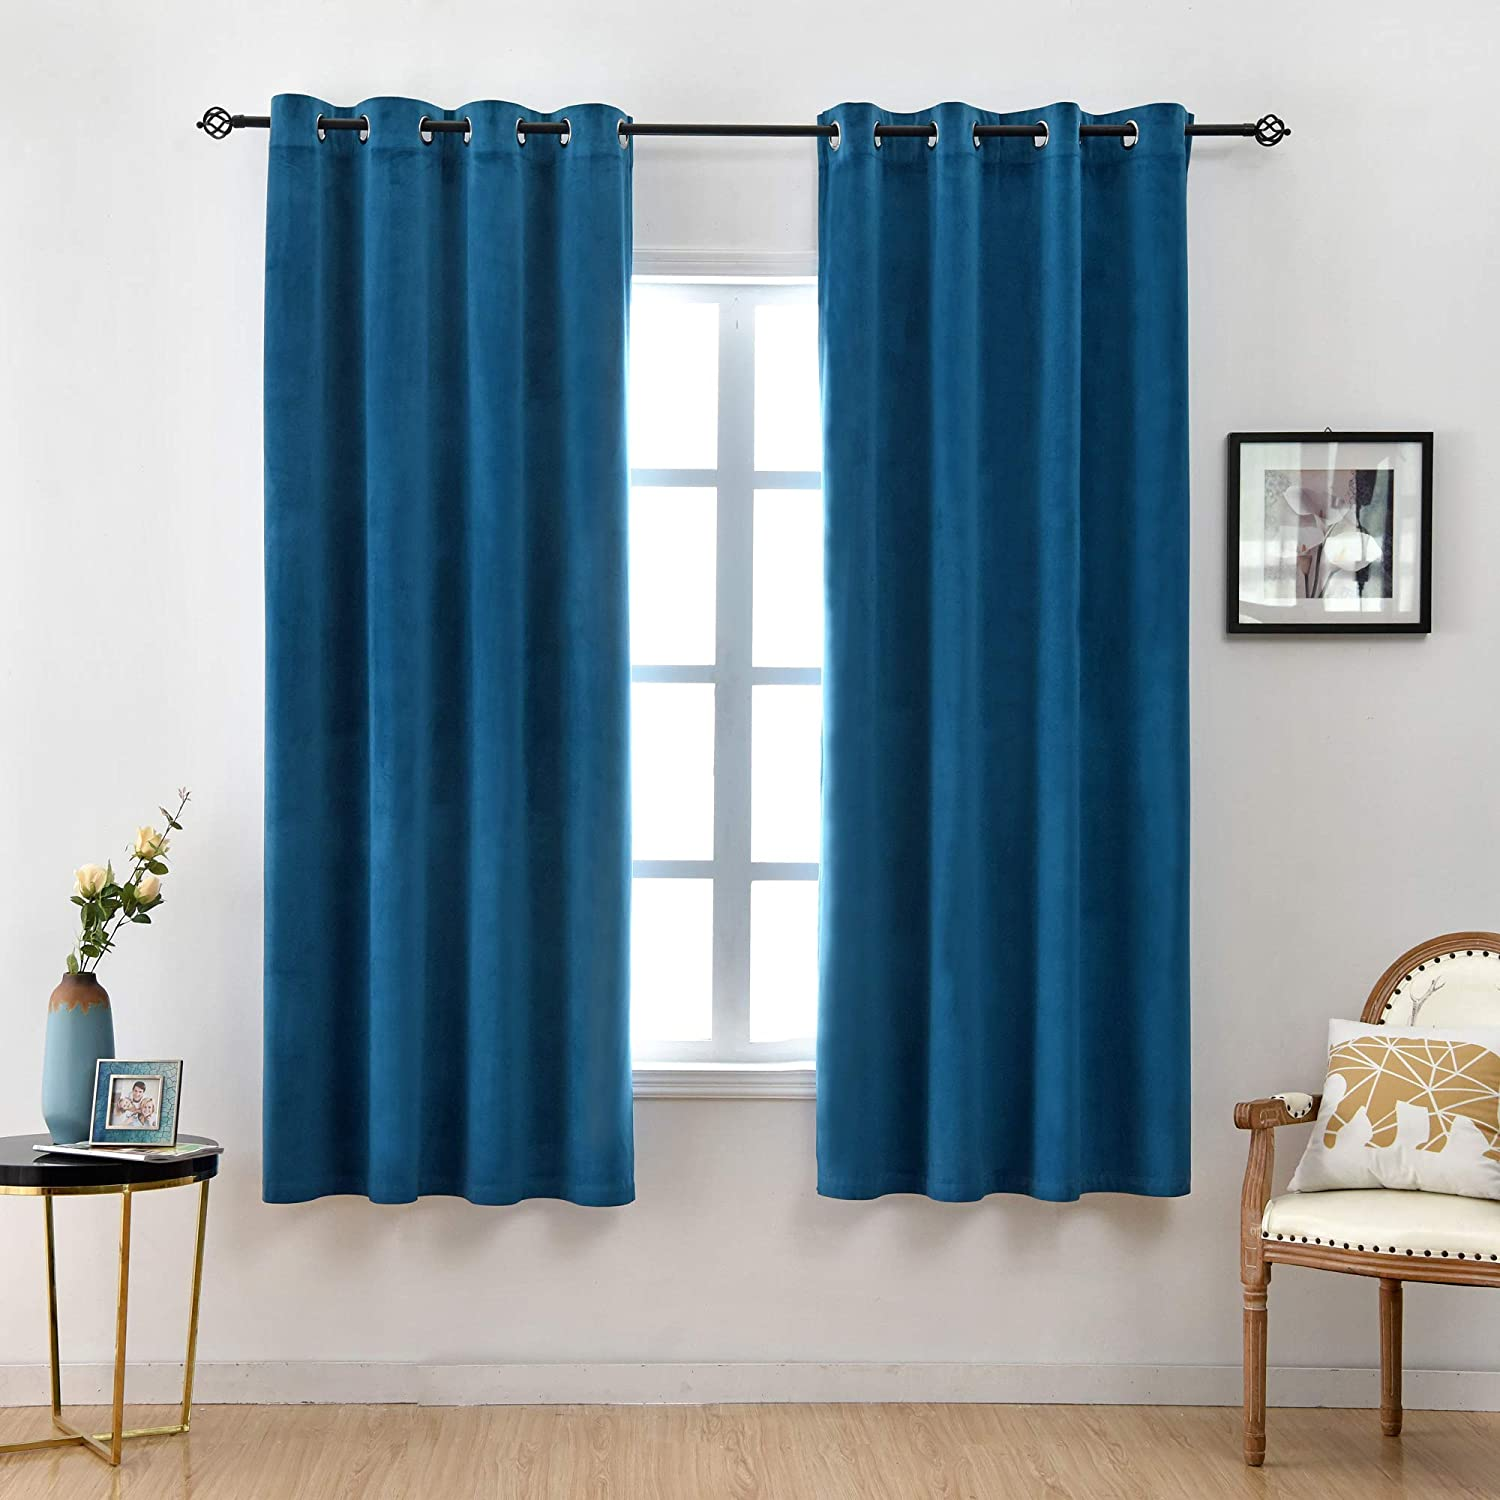 SUNOOMY Deluxe Blackout Velvet Curtain Panels - Grommet Window Treatment for Living Room/Bedroom/Home Theatre (1 Pair, W52xL84-inch,Royal Blue)